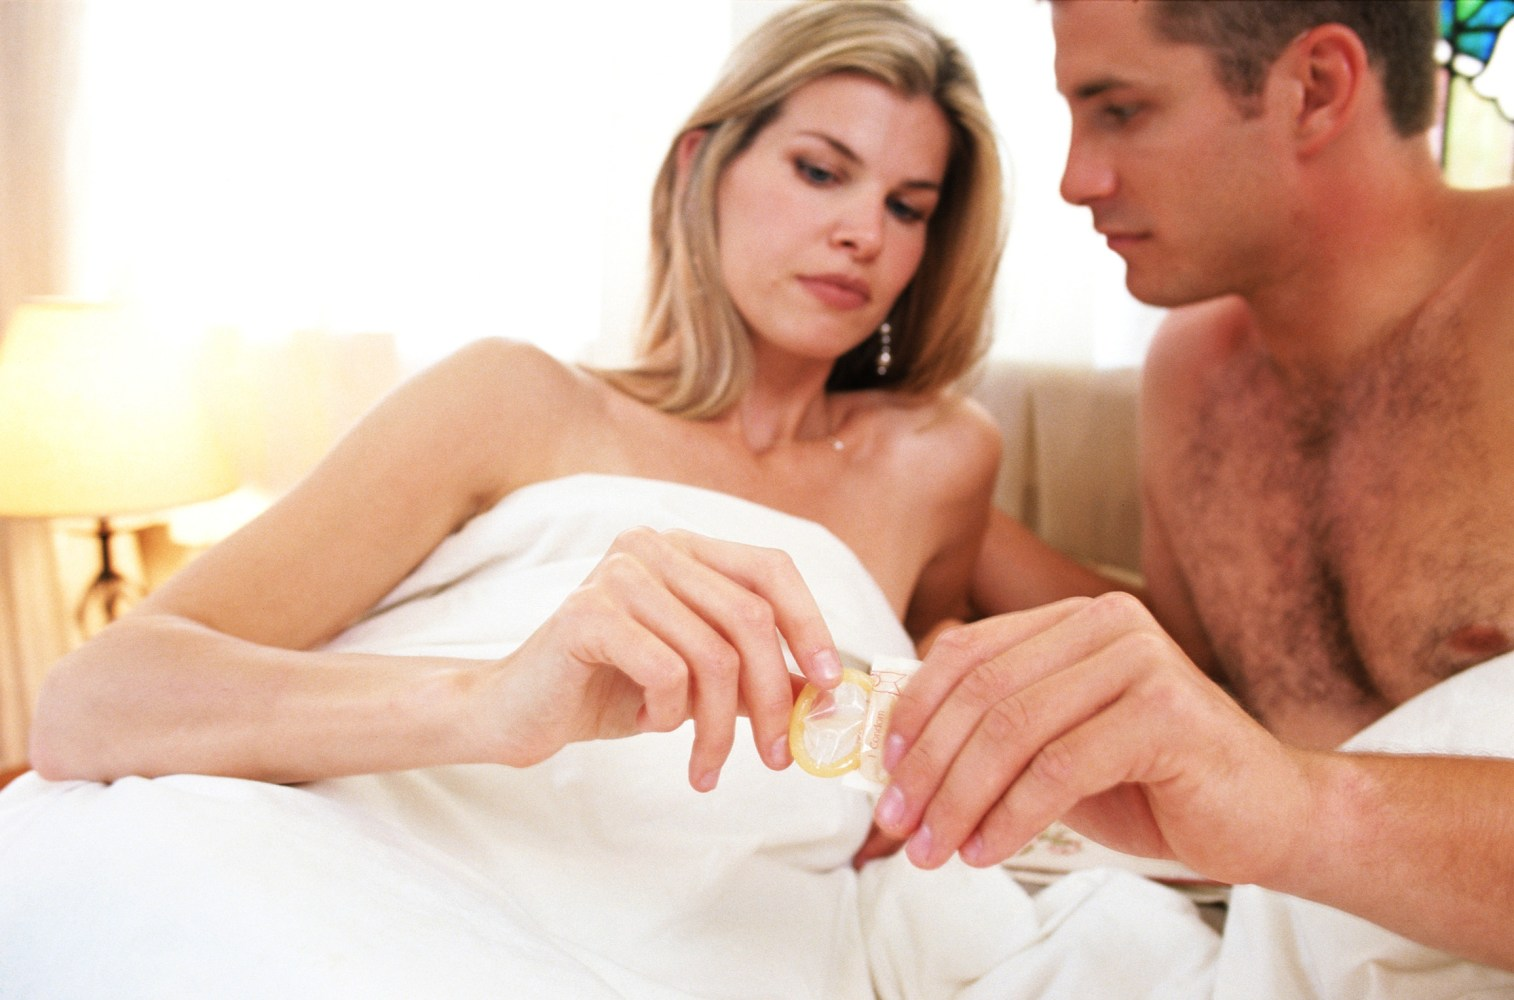 CDC: Only a third of American men use a condom